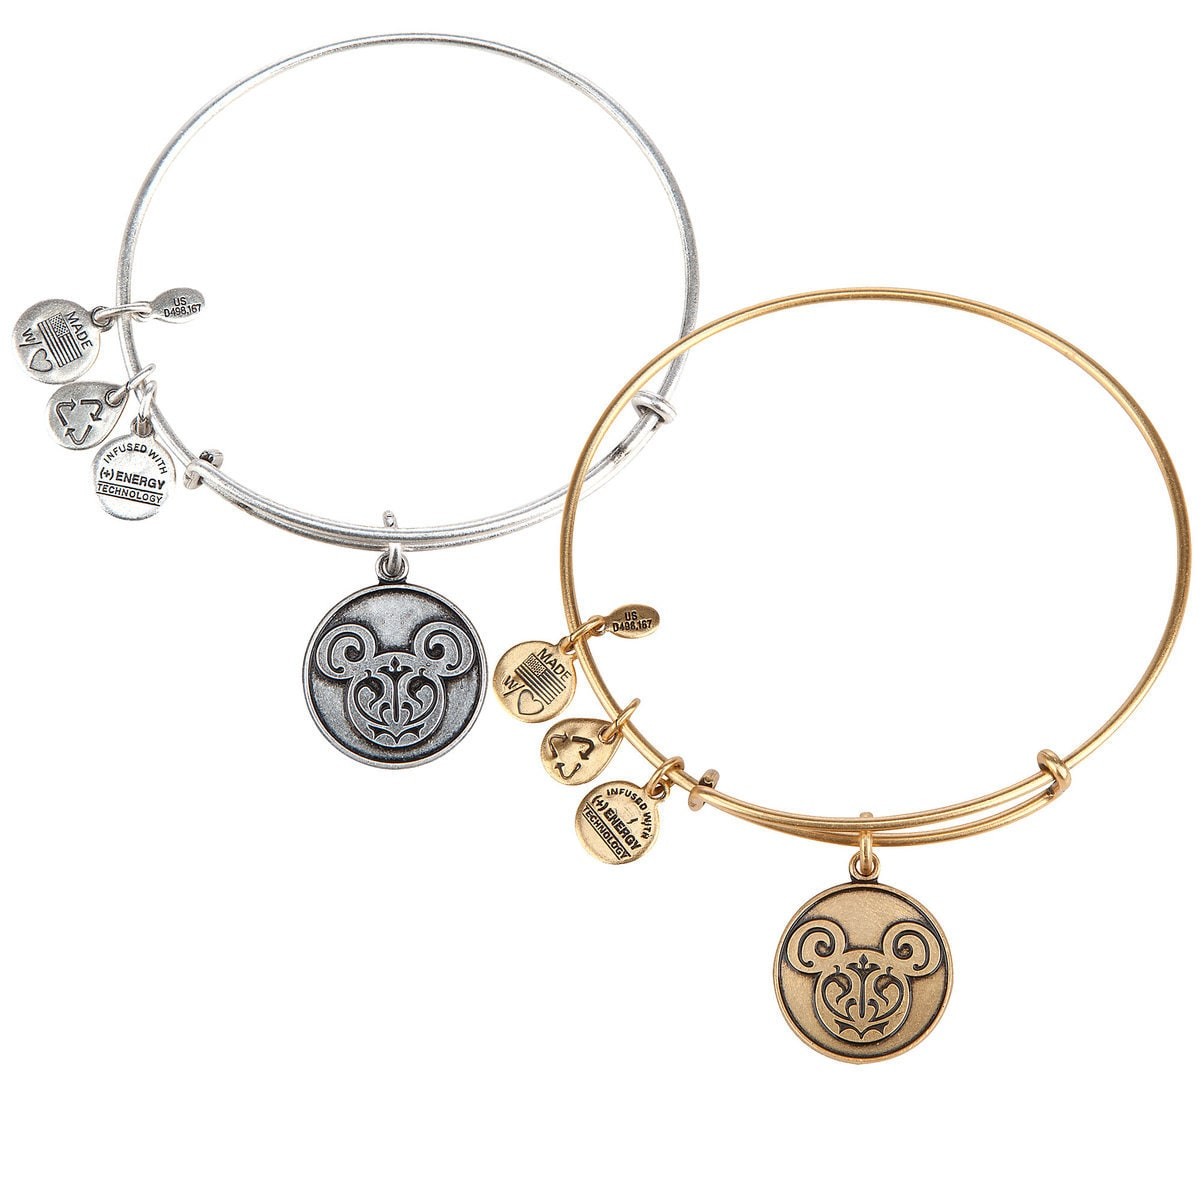 00a1b4a39 Product Image of Mickey Mouse Filigree Bangle by Alex and Ani # 1